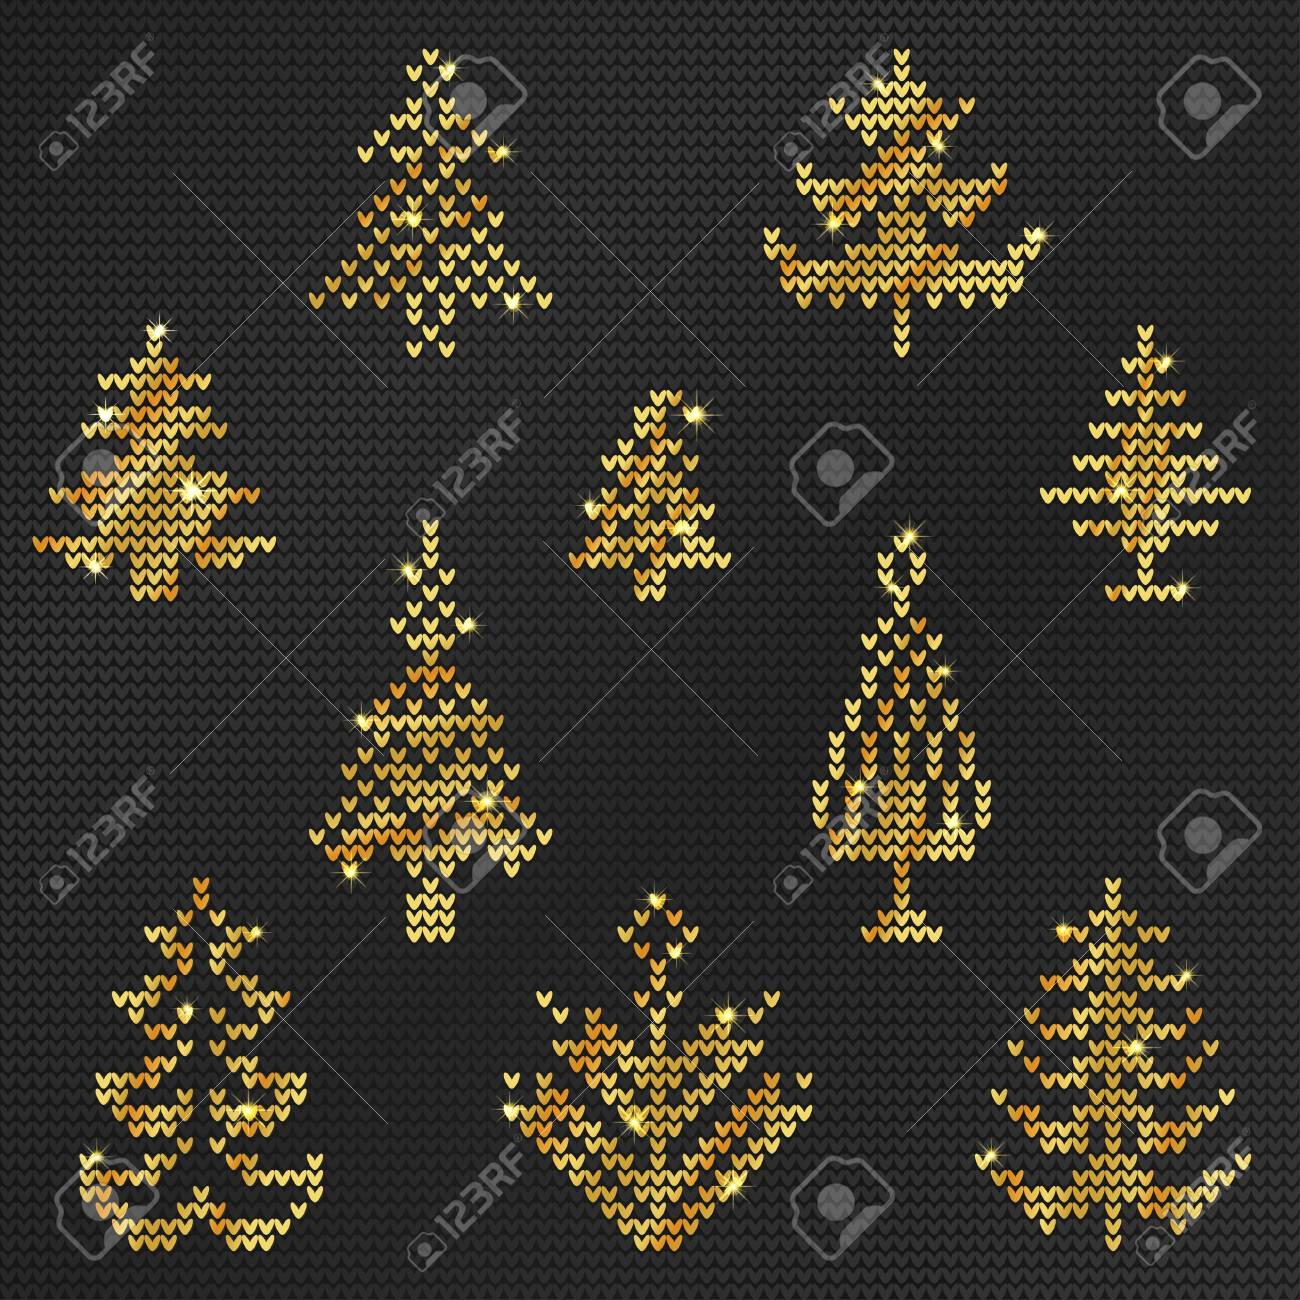 21bddc27dac4 Vector - Vector Illustration of Gold Ugly sweater Pattern for Design